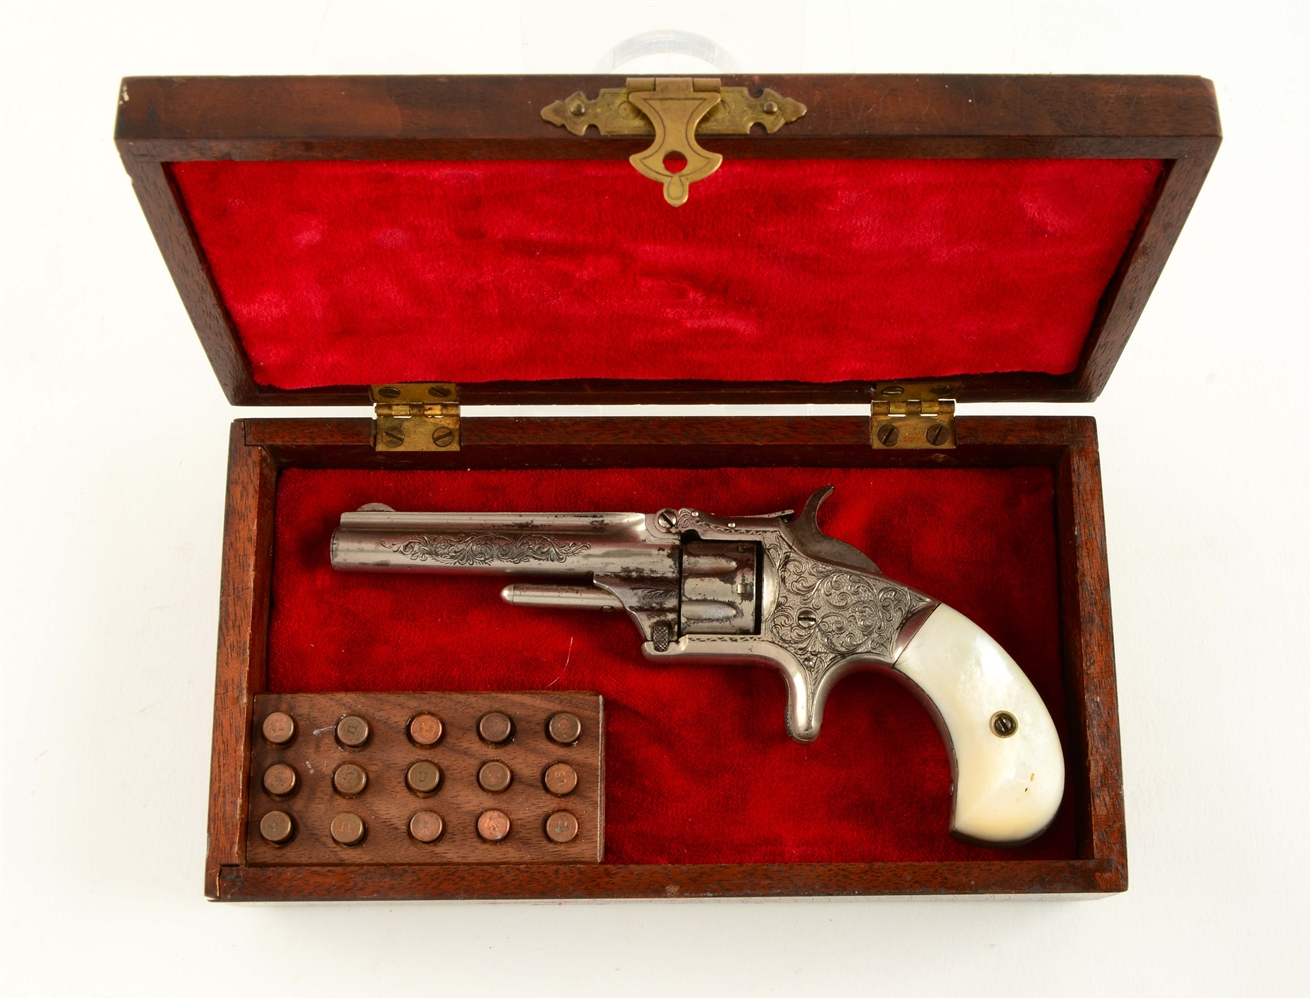 (A) Factory Engraved & Cased S&W No. 1 Single Action Revolver.